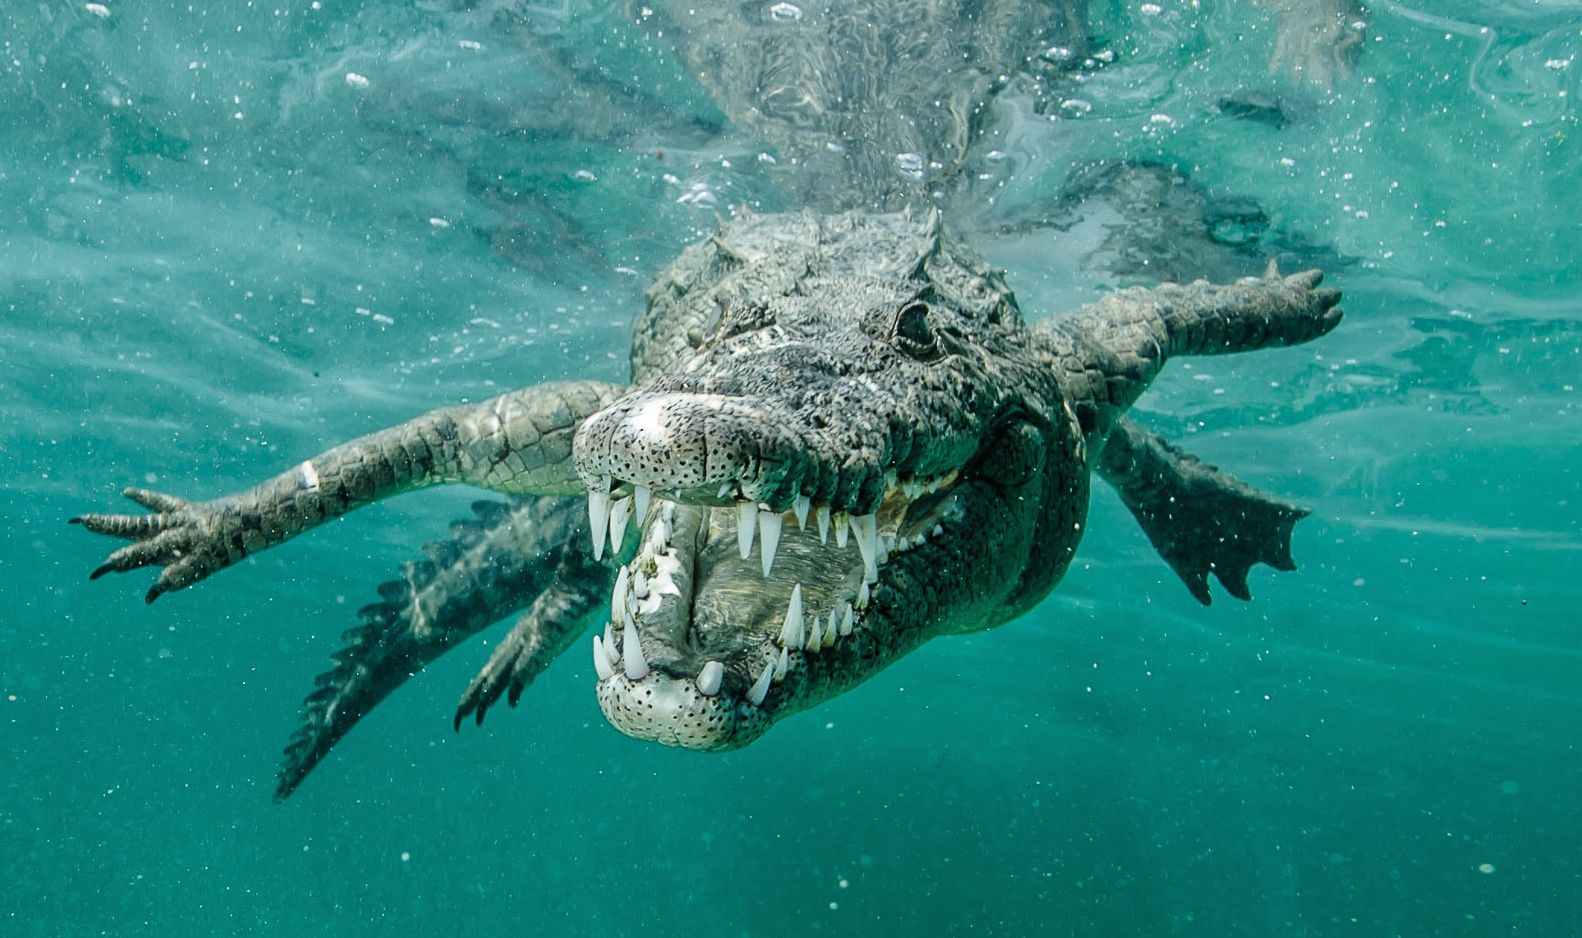 Ricardo Castillo comes face to face with a saltwater crocodile off Cuba. Photo: Courtesy of Ricardo Castillo